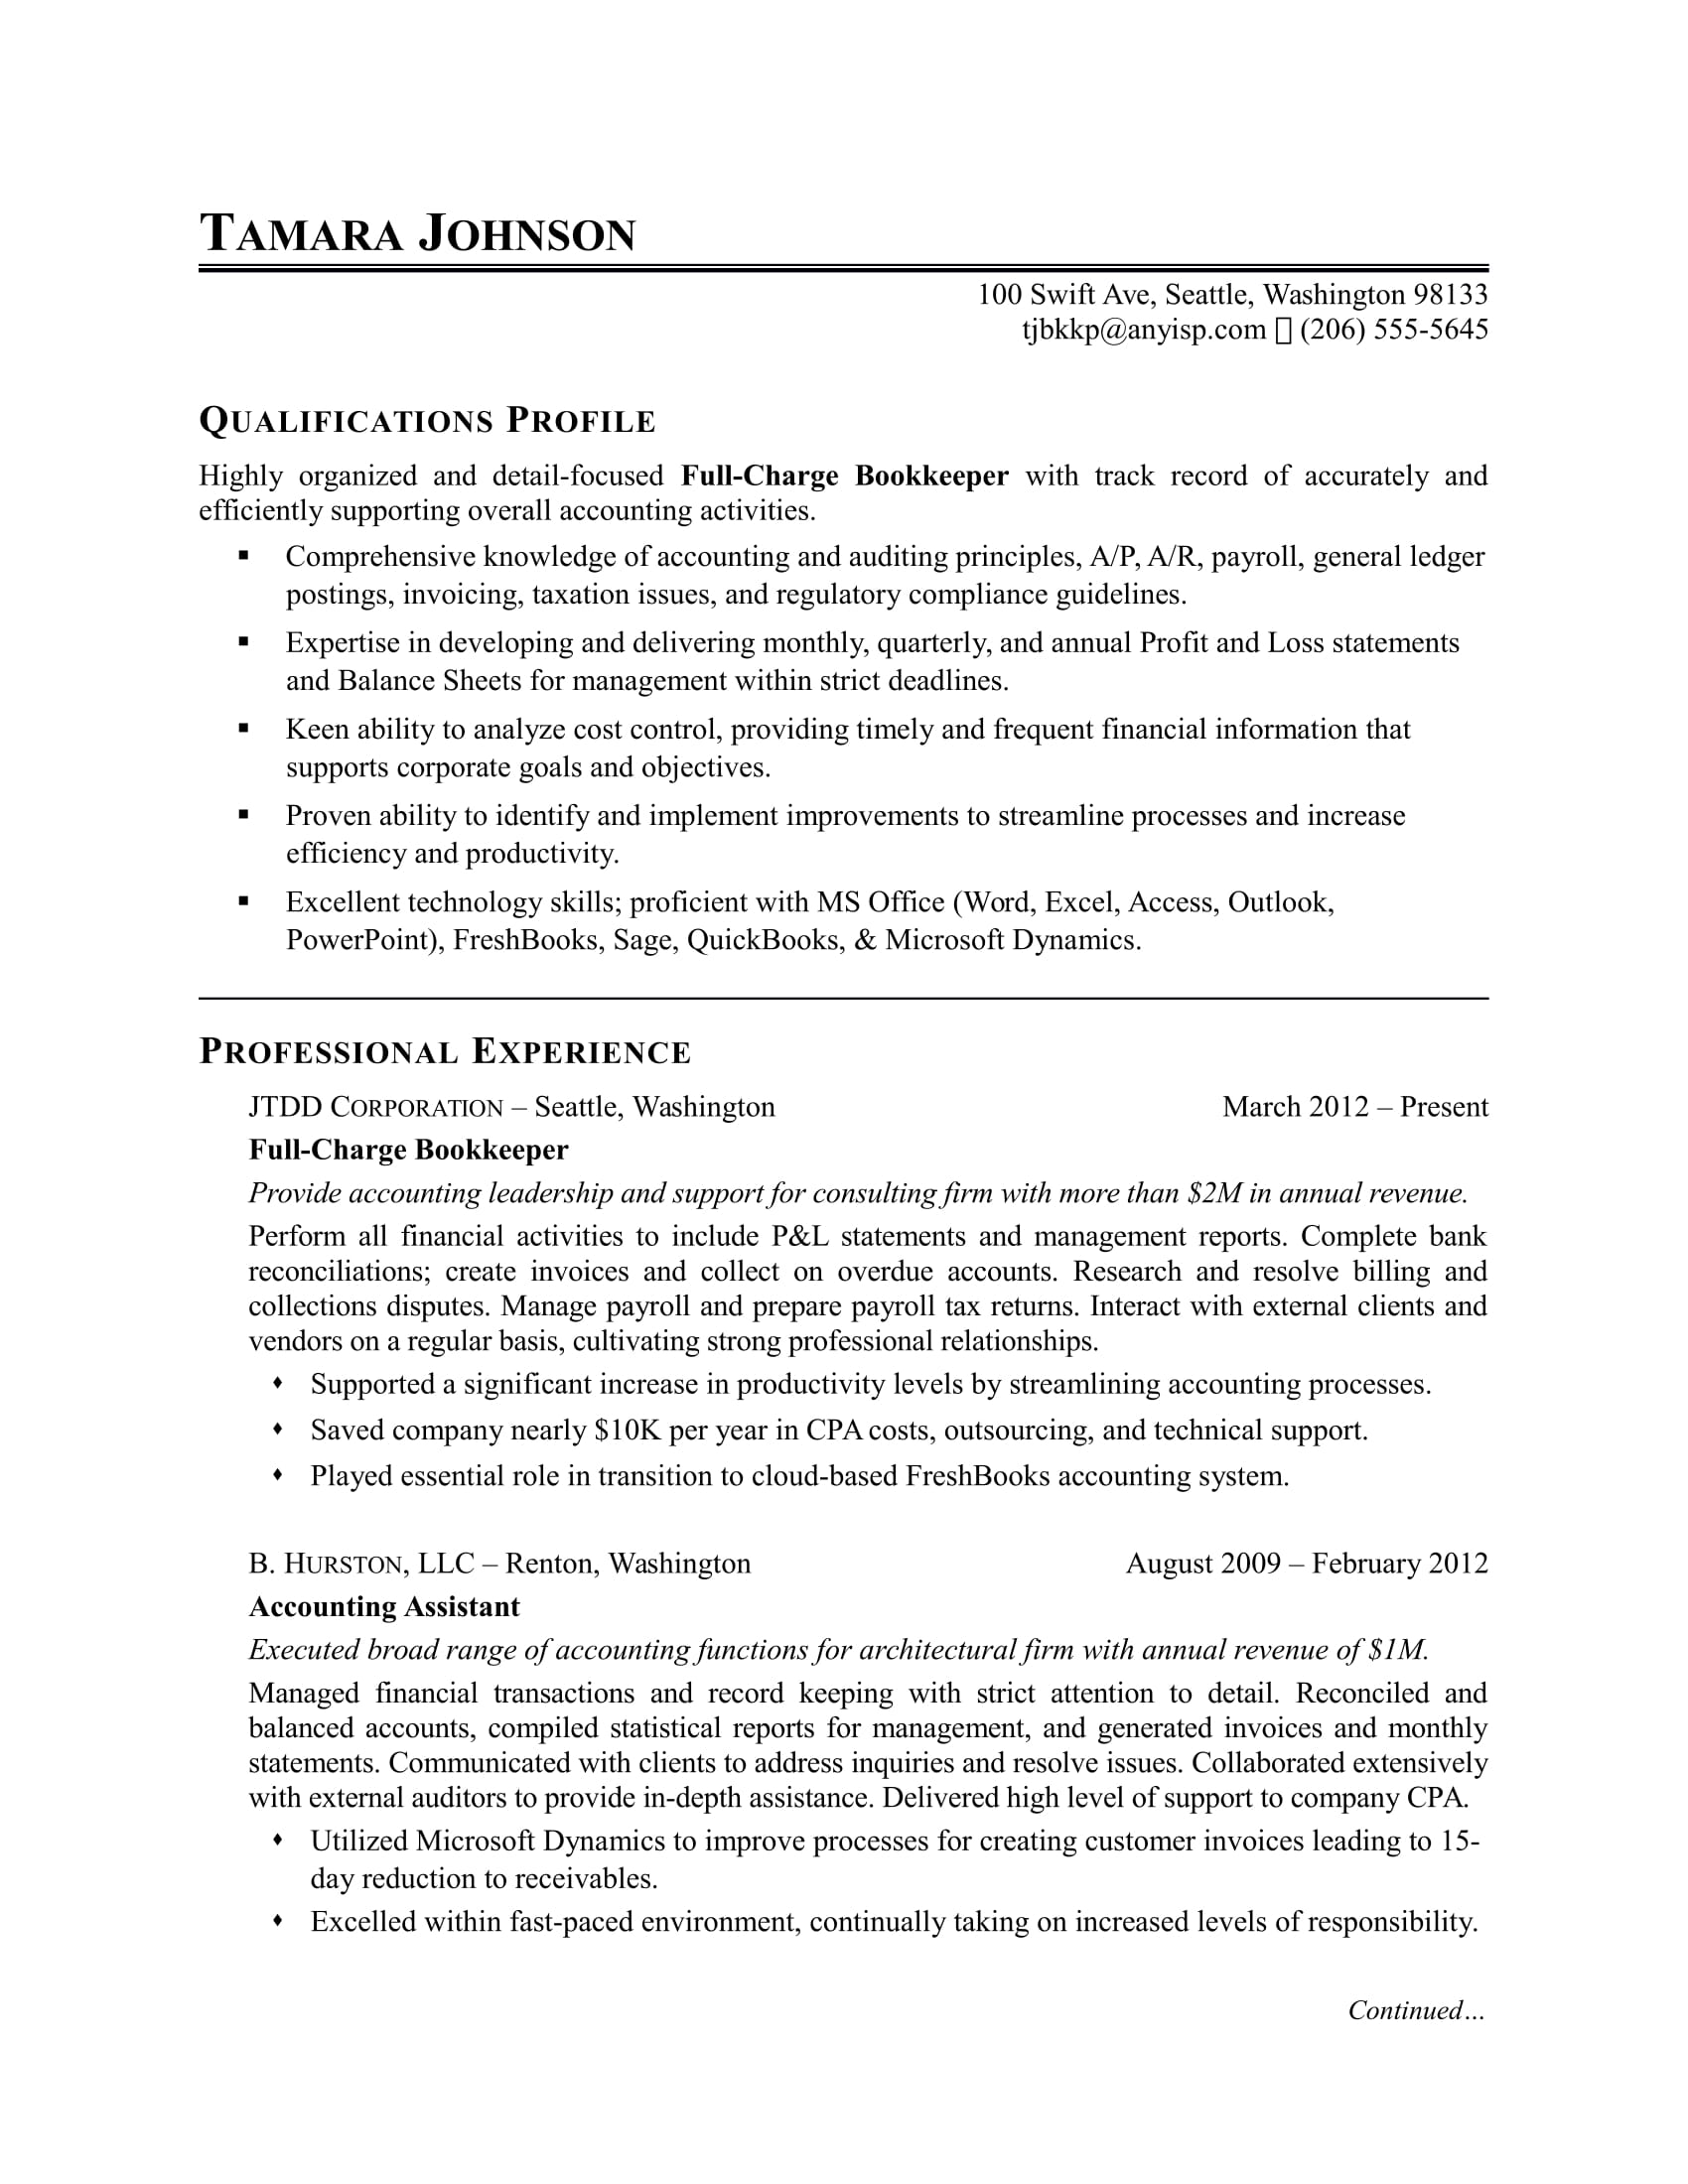 sample resume for a bookkeeper - Bookkeeper Resume